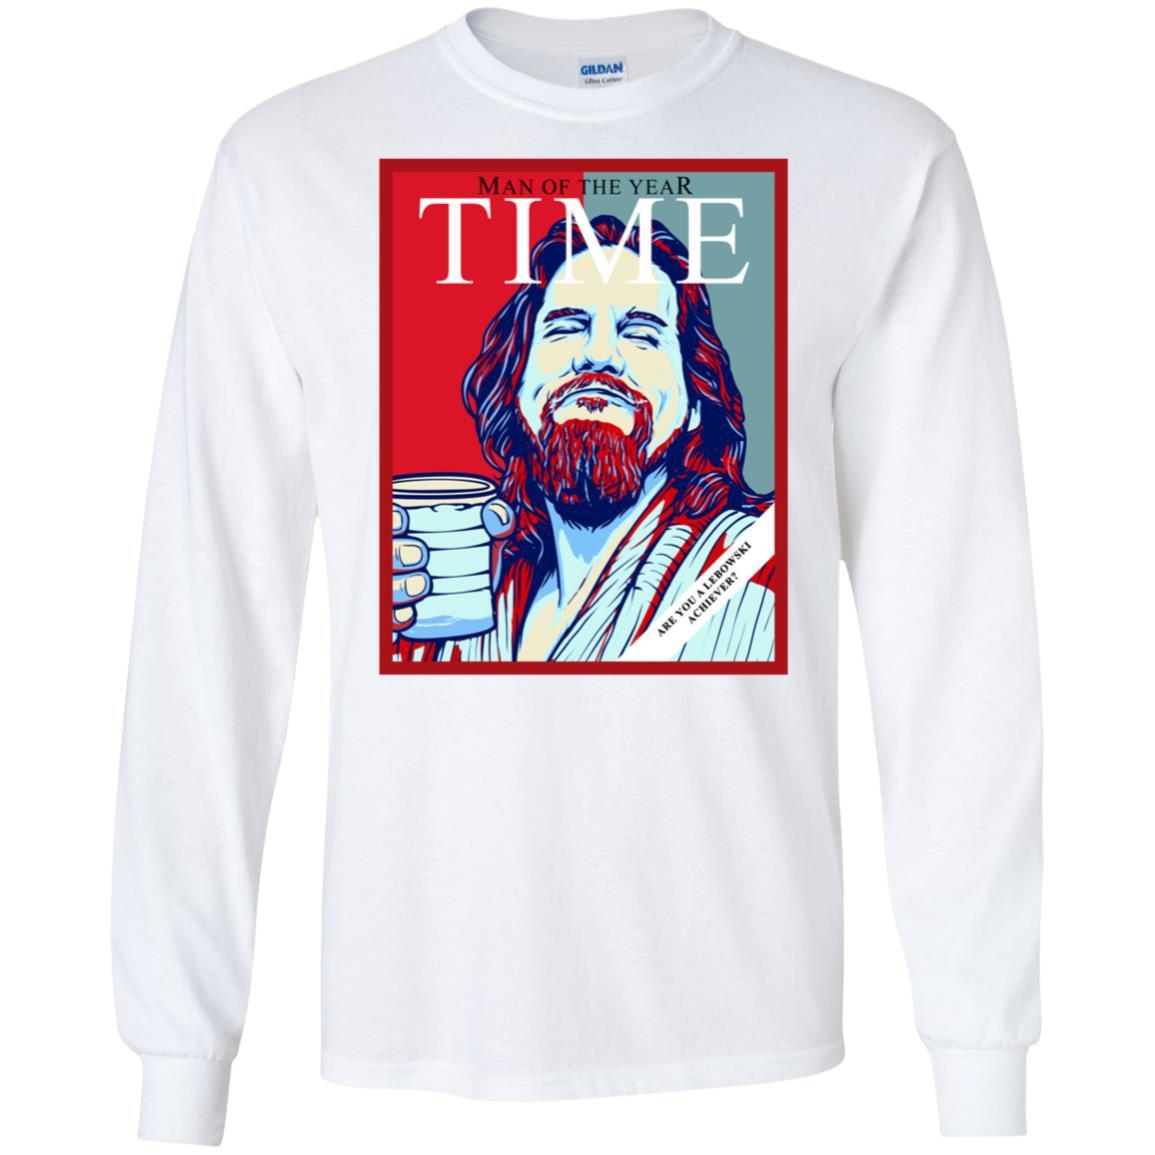 Man of The Year Long Sleeve